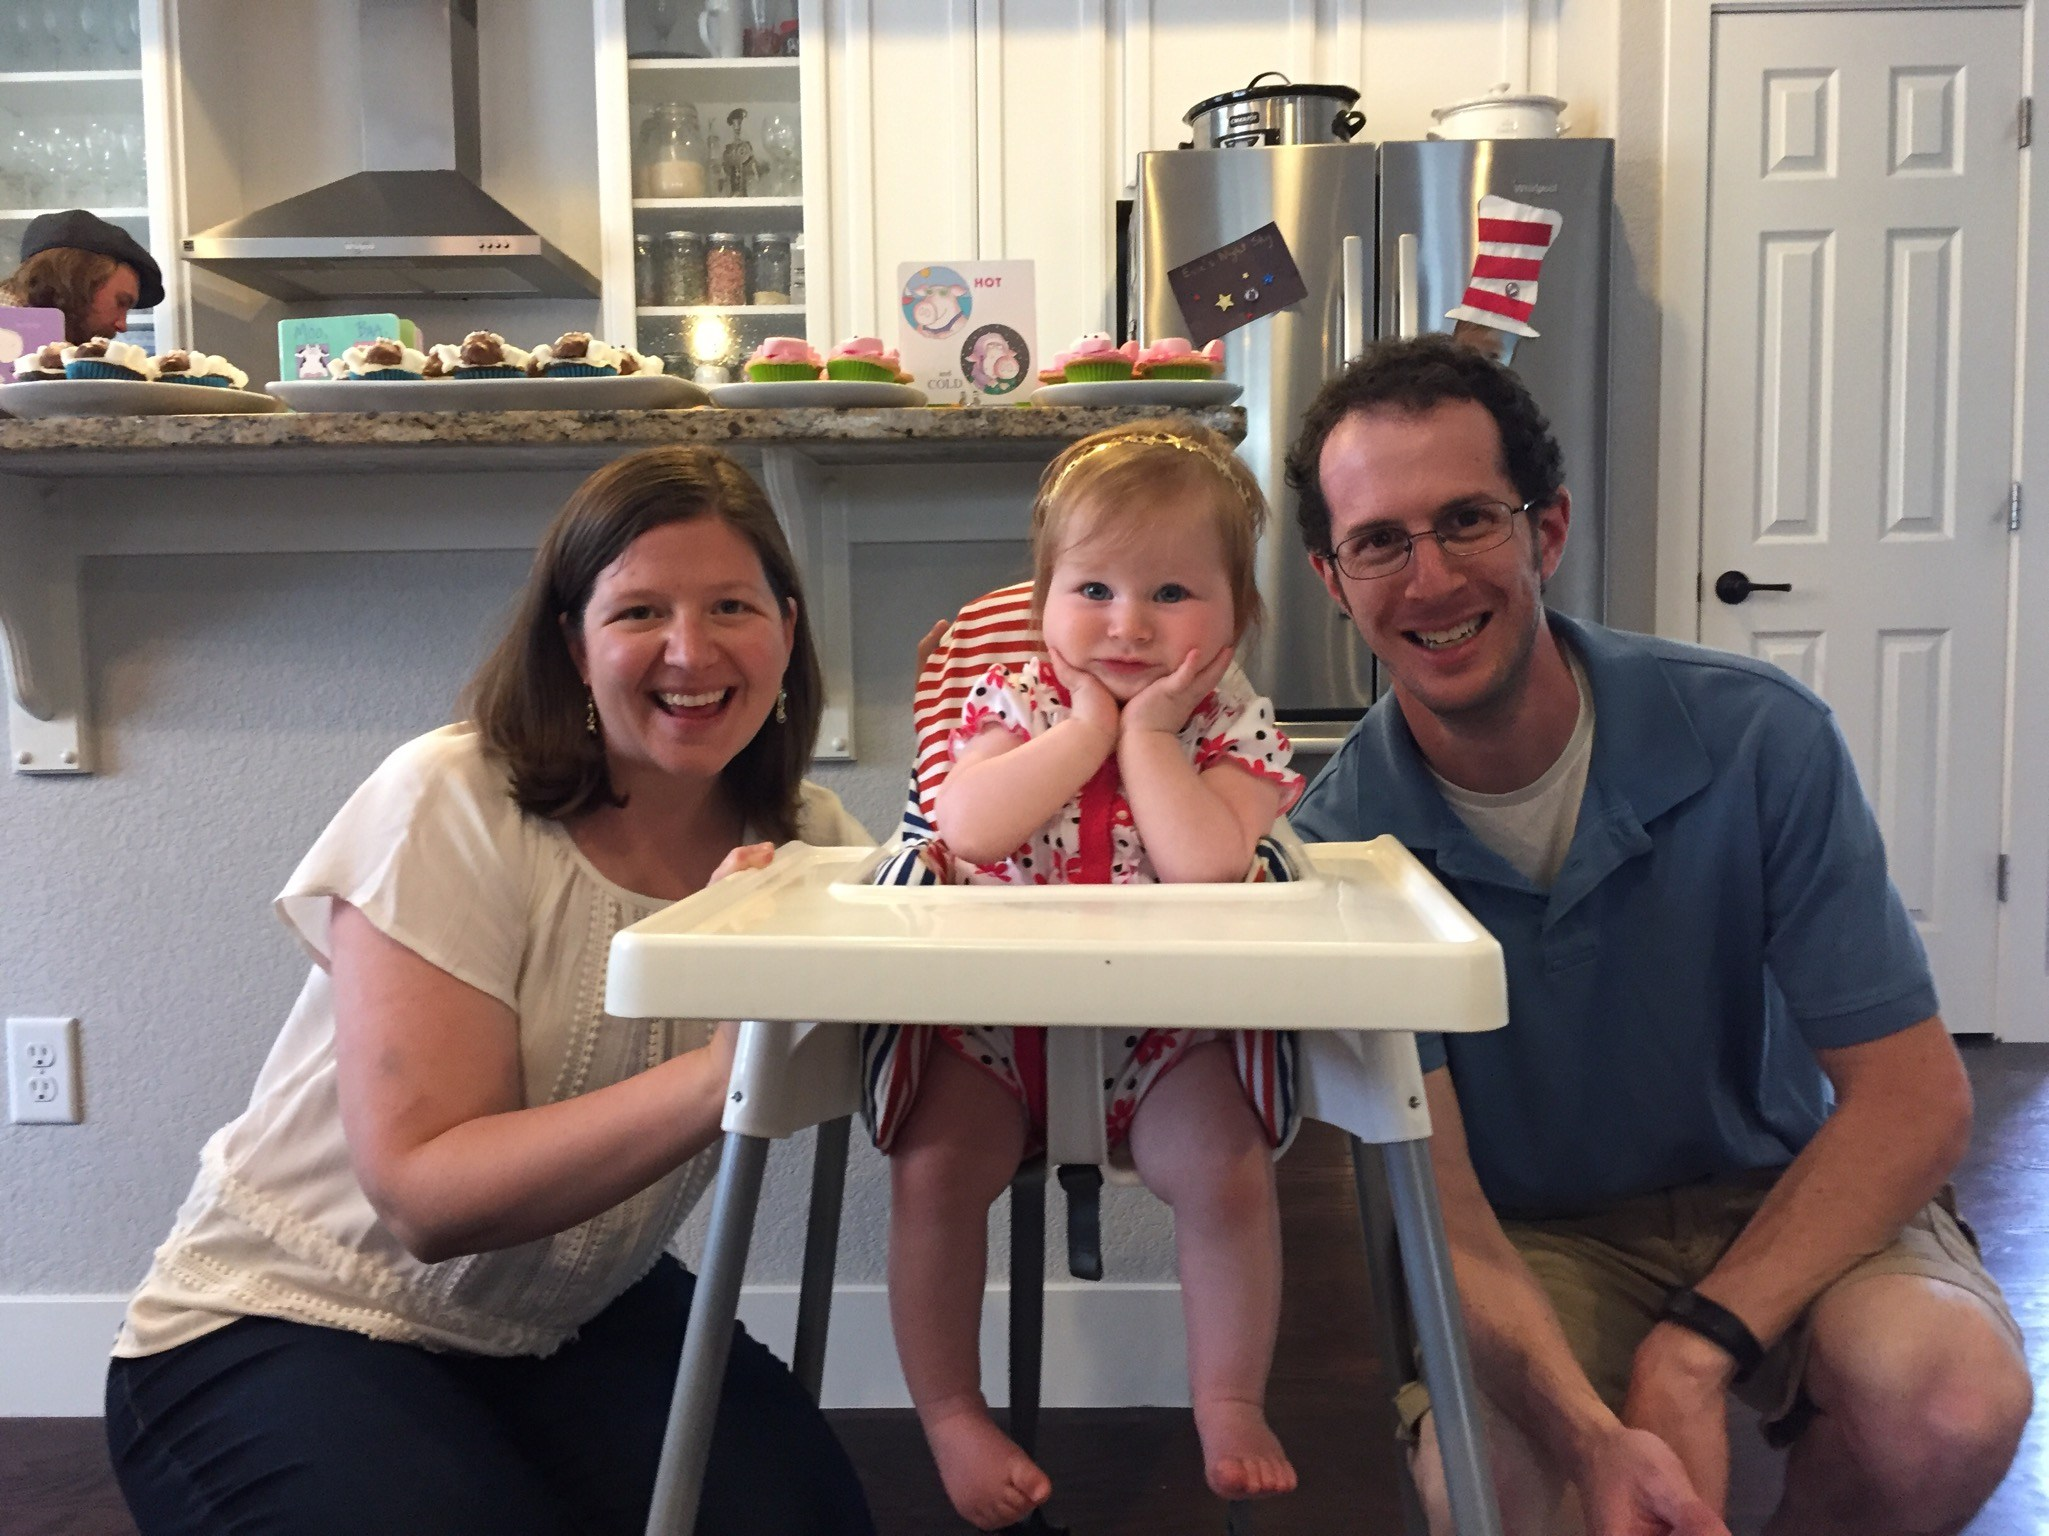 My family on my daughter's first birthday.